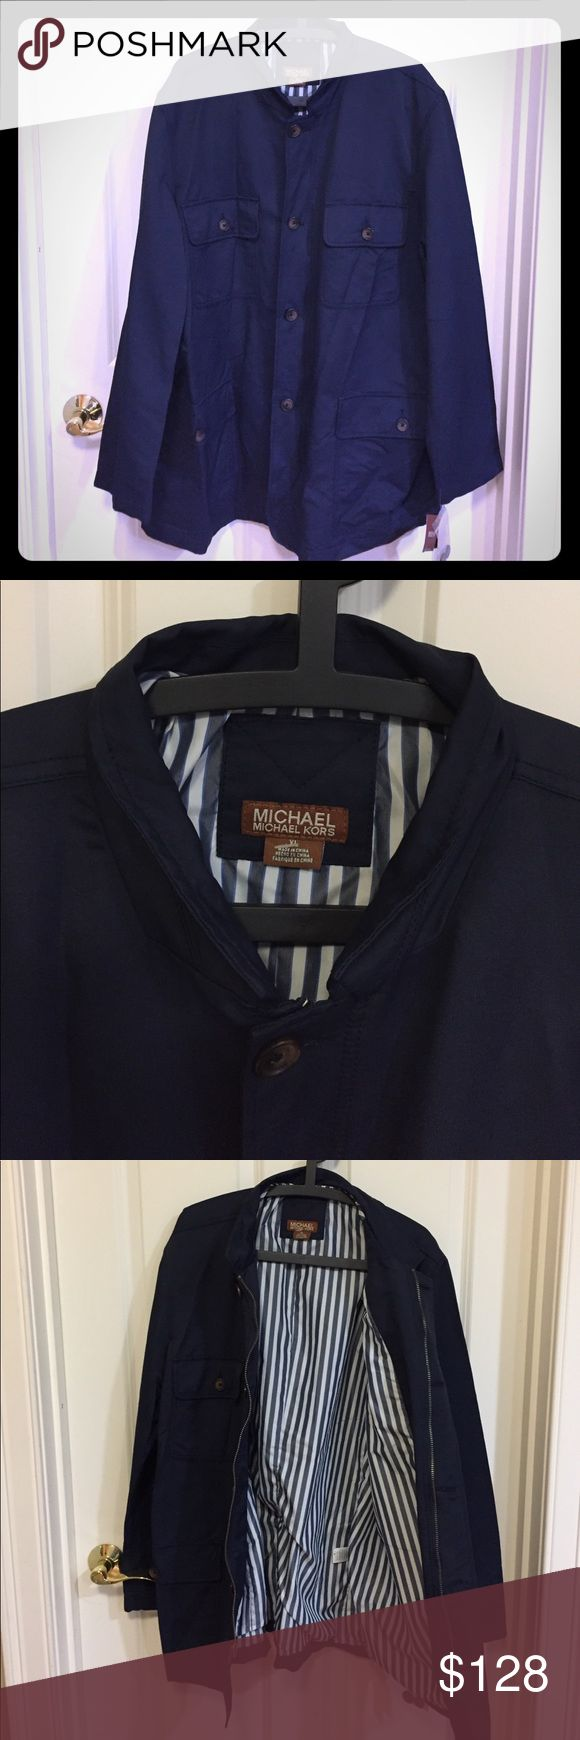 NWT Michael kors men's jacket New with tag condition, perfect light wear spring fall jacket Michael Micahel Kors collection originally $148. Navy XL men's MICHAEL Michael Kors Jackets & Coats Lightweight & Shirt Jackets